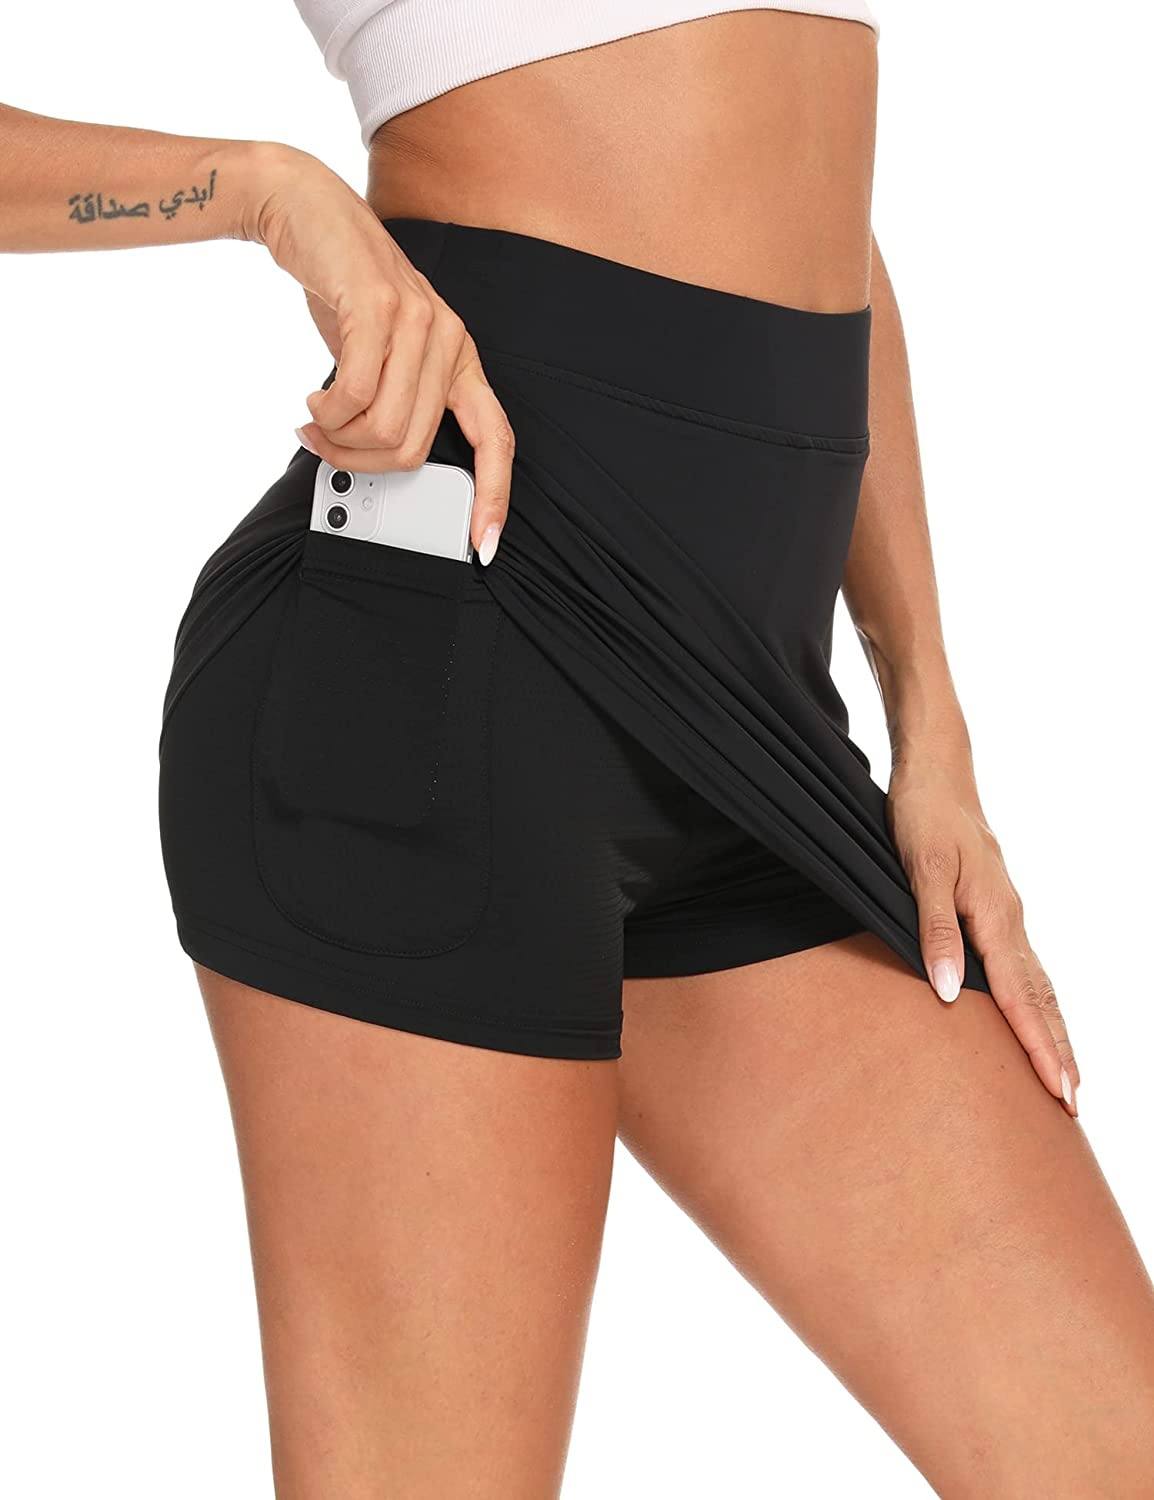 Max 89% OFF Women's High Waisted Discount mail order Tennis Skirt Athletic Golf Skort wit Active